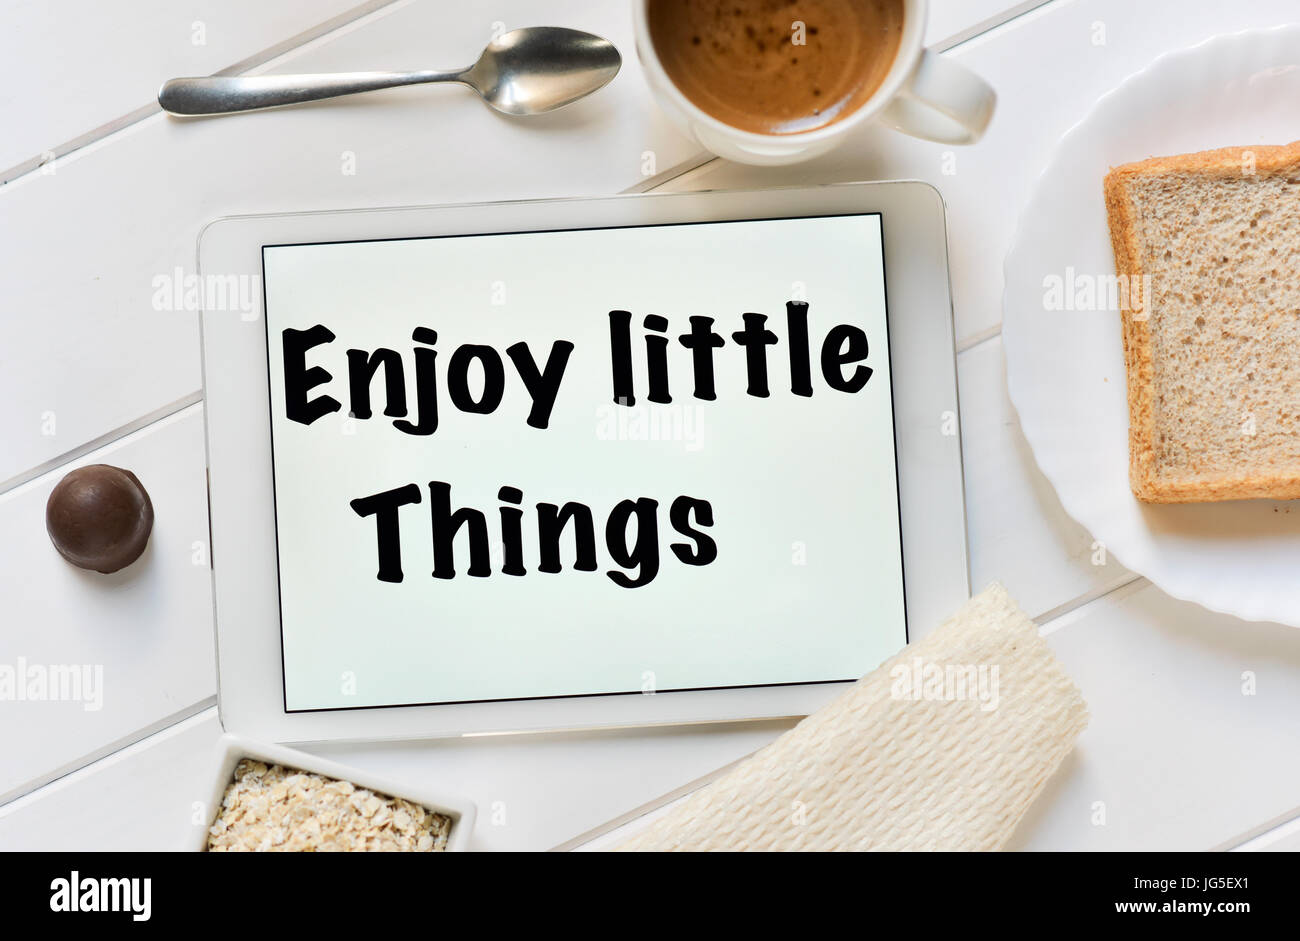 high-angle shot of a tablet with the text enjoy little things in its screen and a cup of coffee, a bowl with cereals - Stock Image